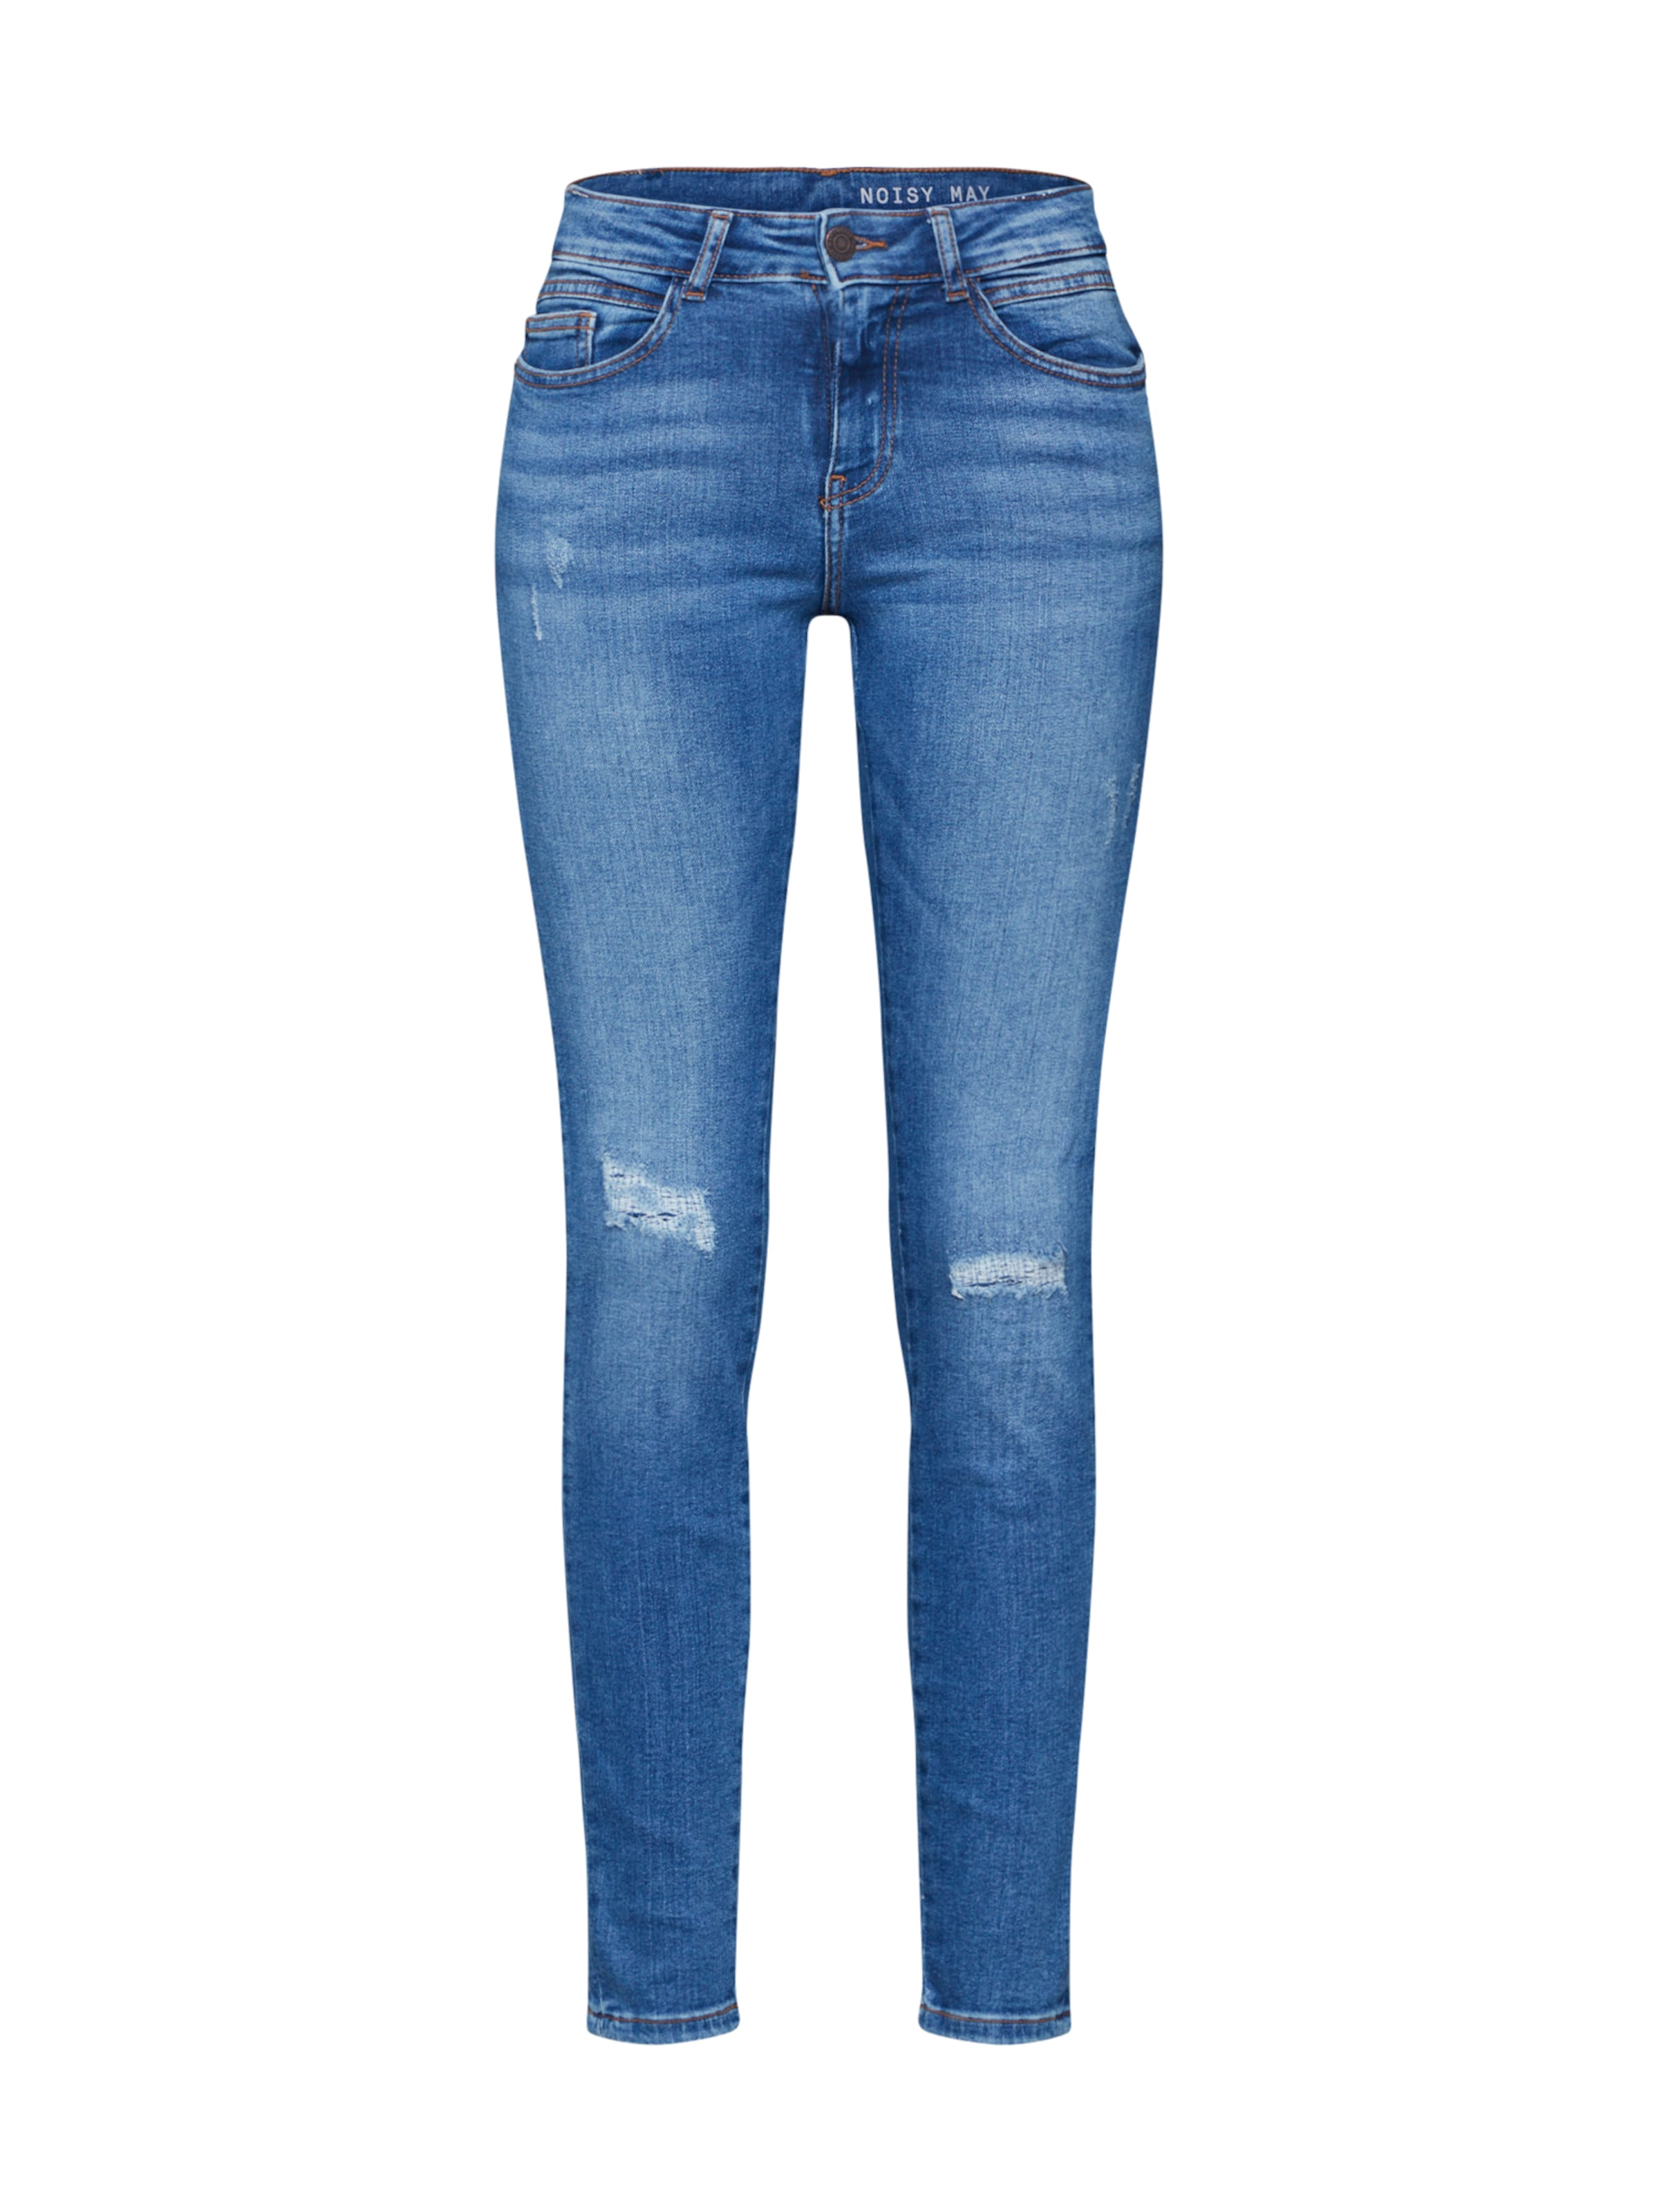 May Jeans Blue Noisy In Denim 'nmlucy' Pk08wOnX